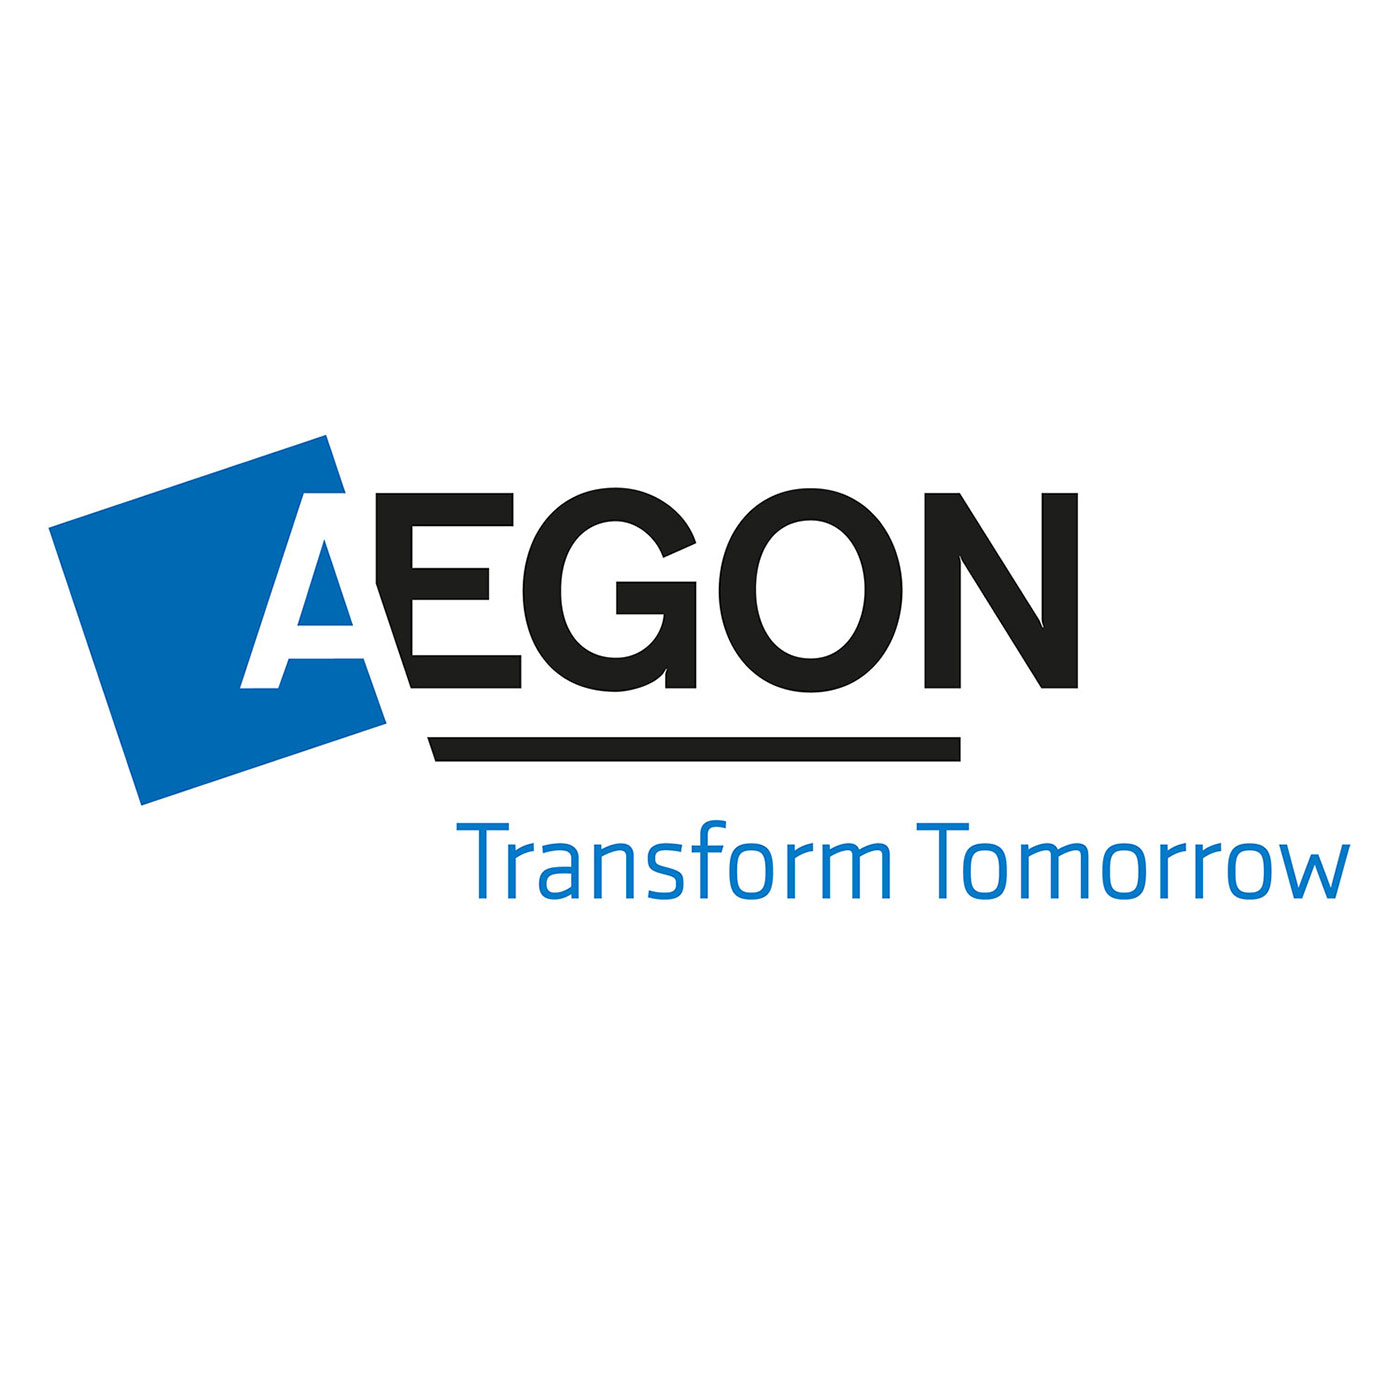 We are Aegon – Stories from Employees